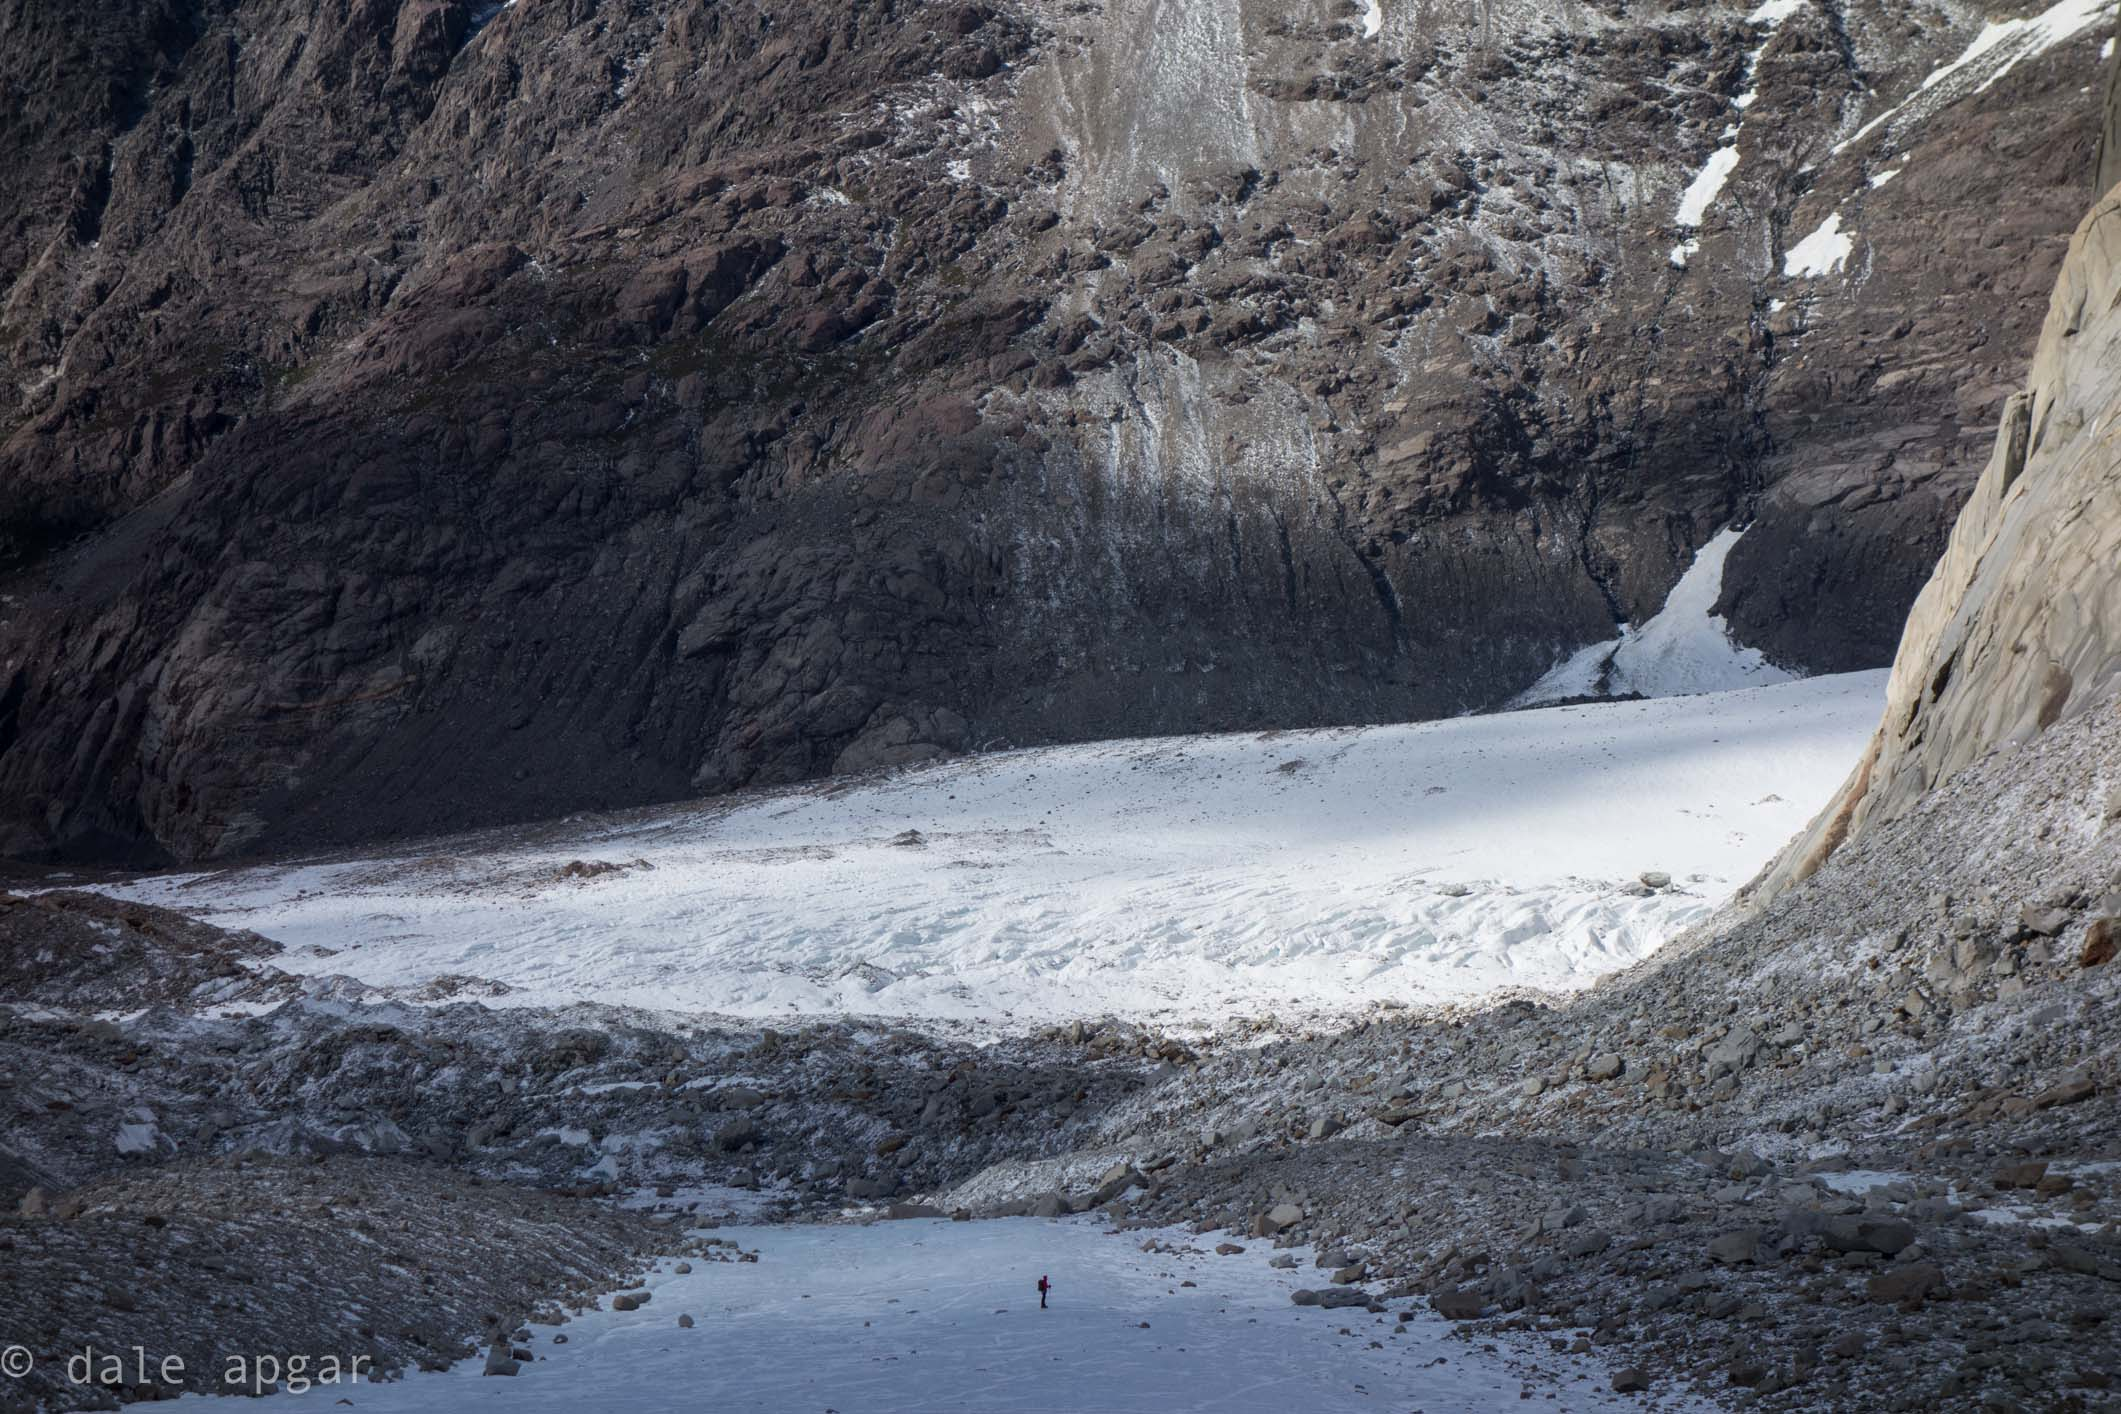 taking in the scale of the Torre Glacier and its surroundings